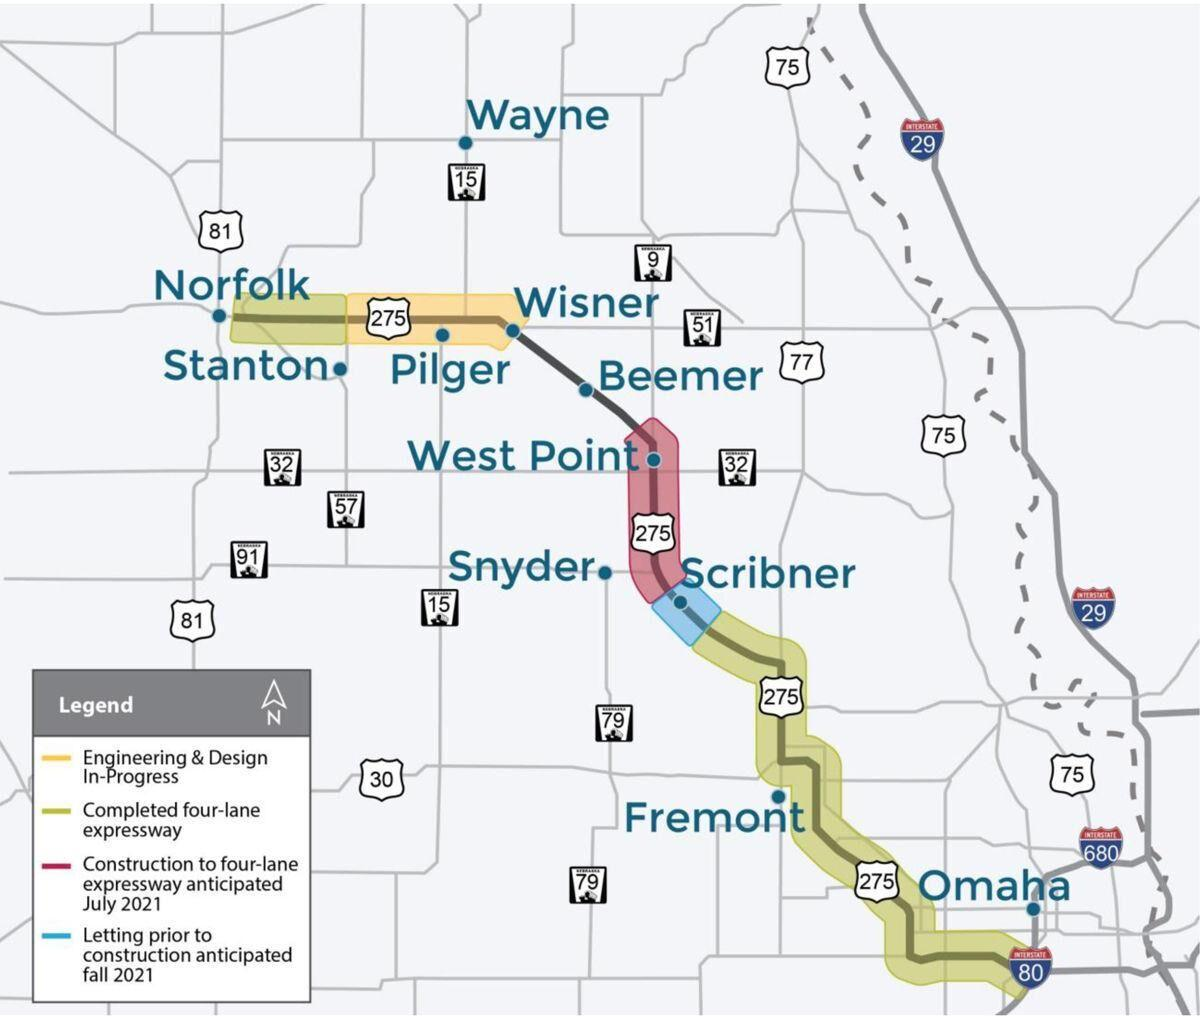 Map of 275 Expressway Project